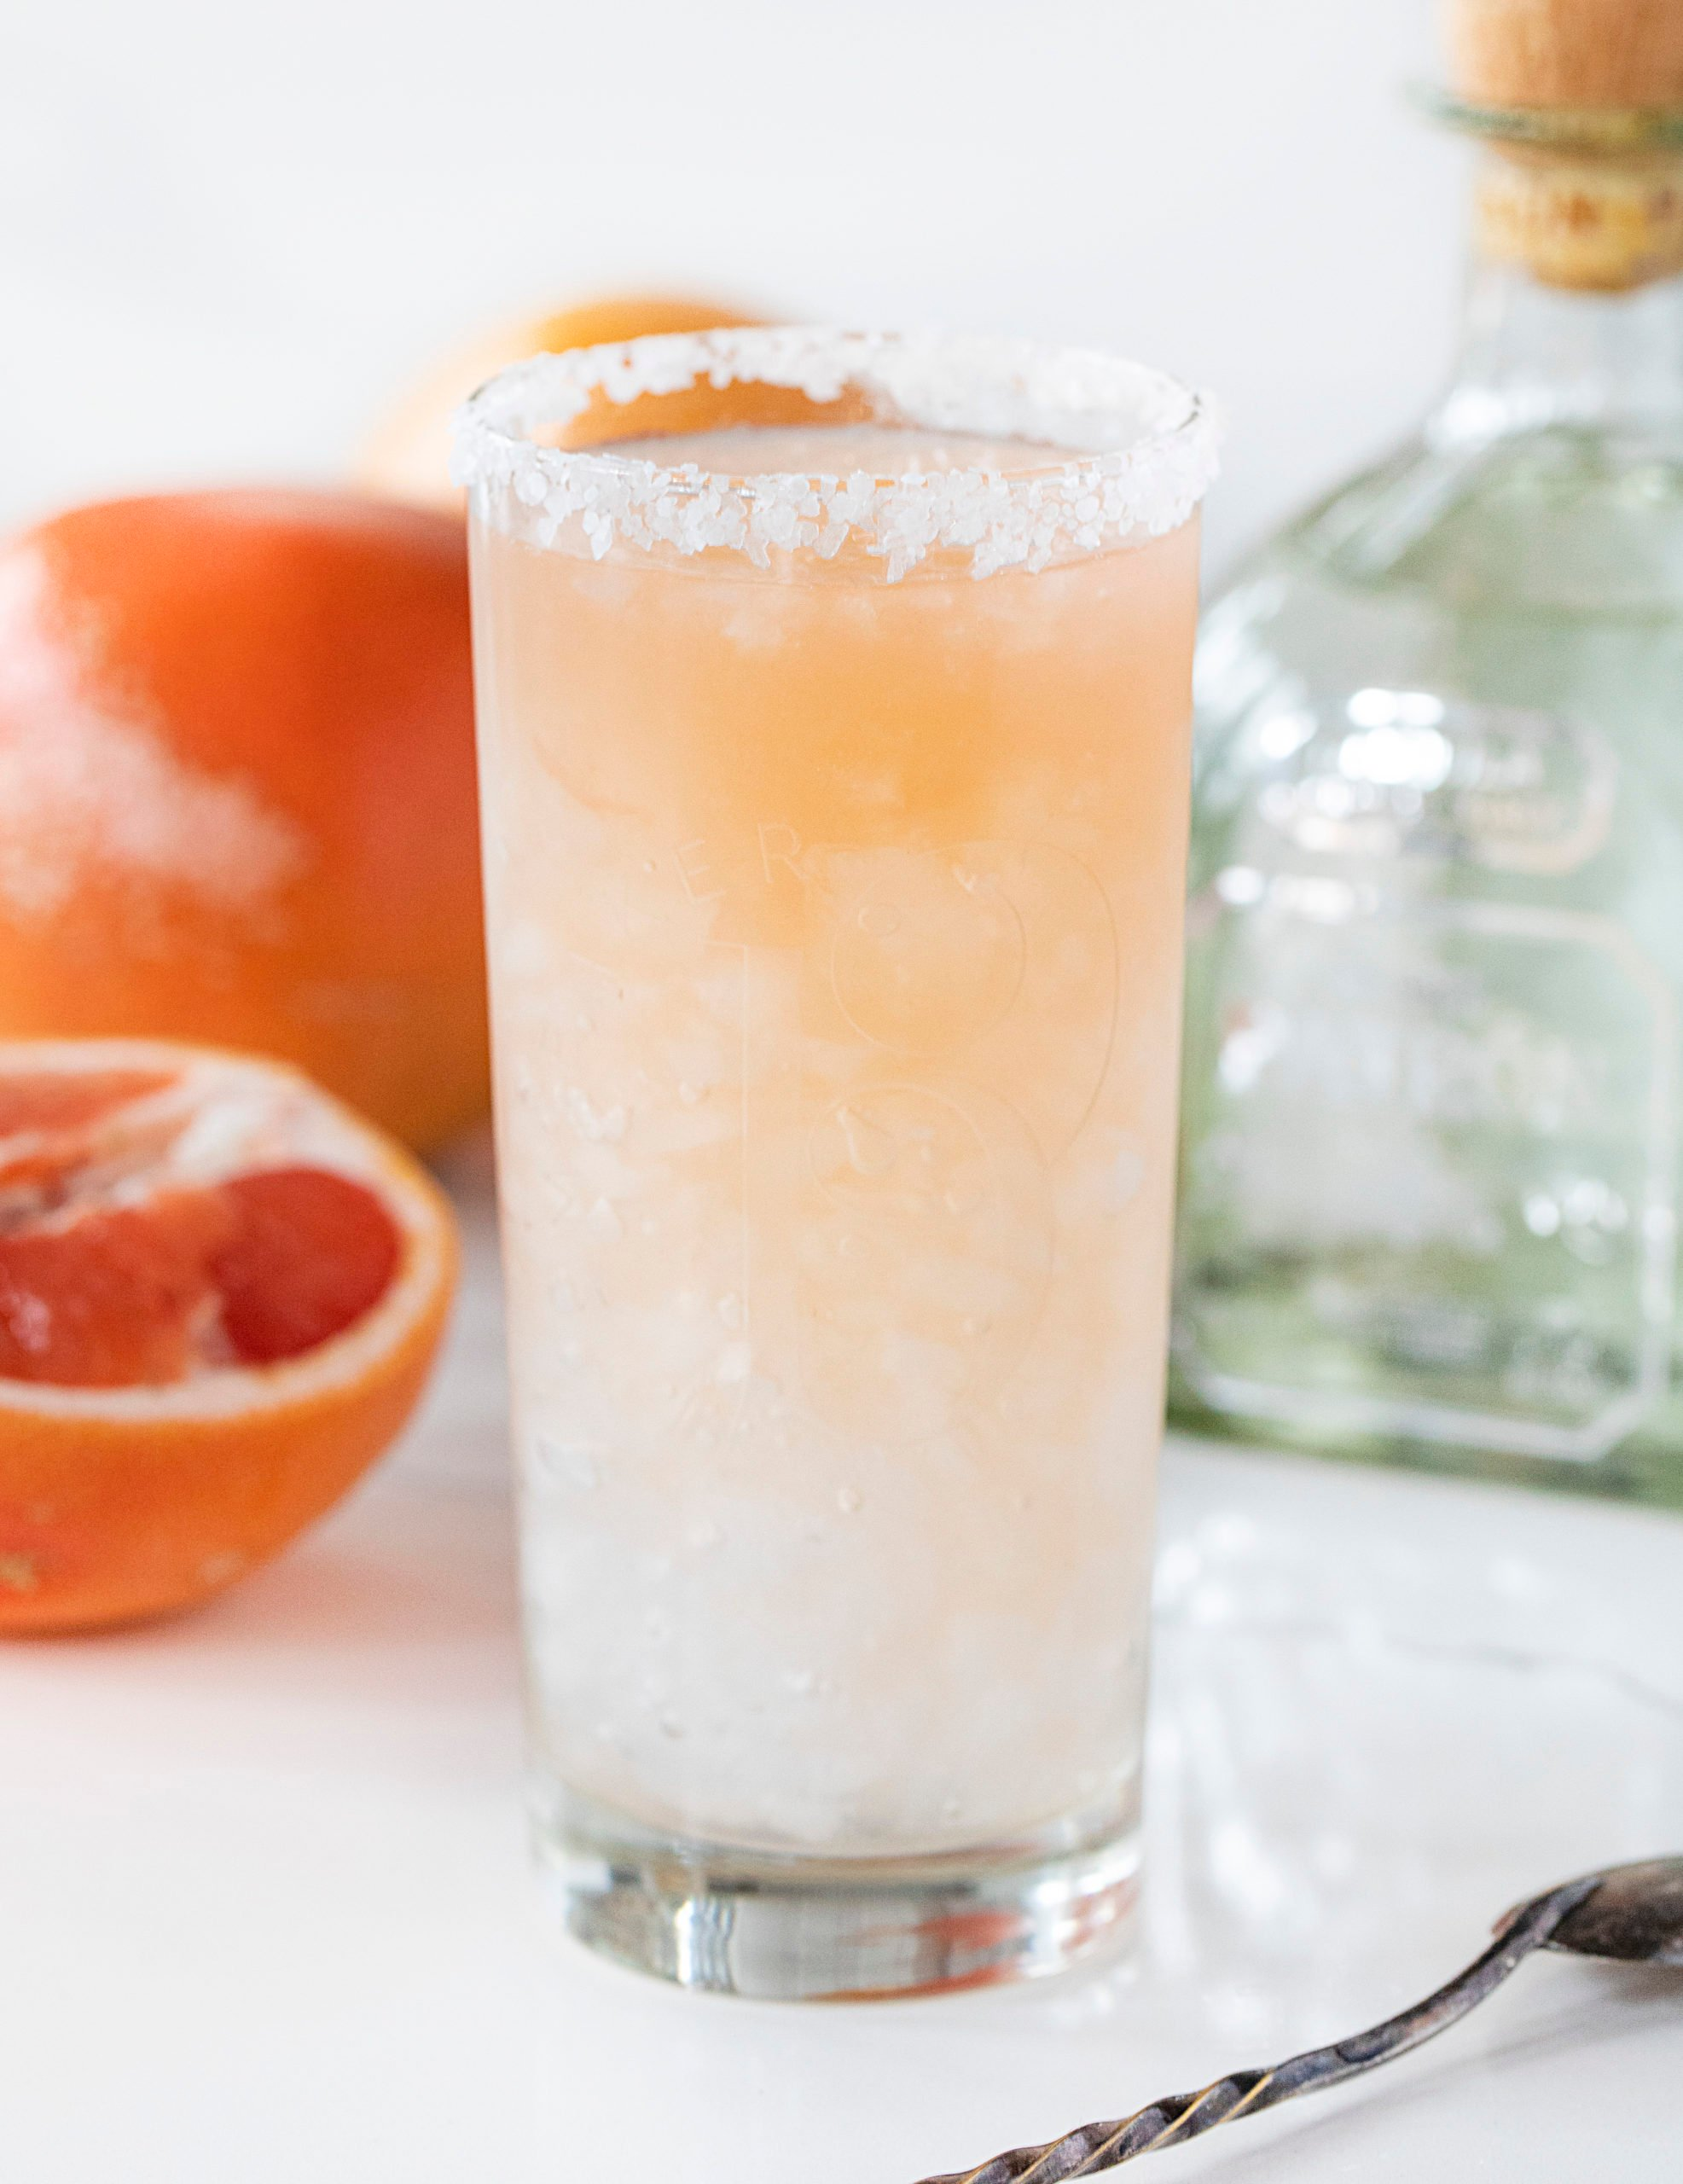 Glass of Paloma with Patron and Grapefruit in Background